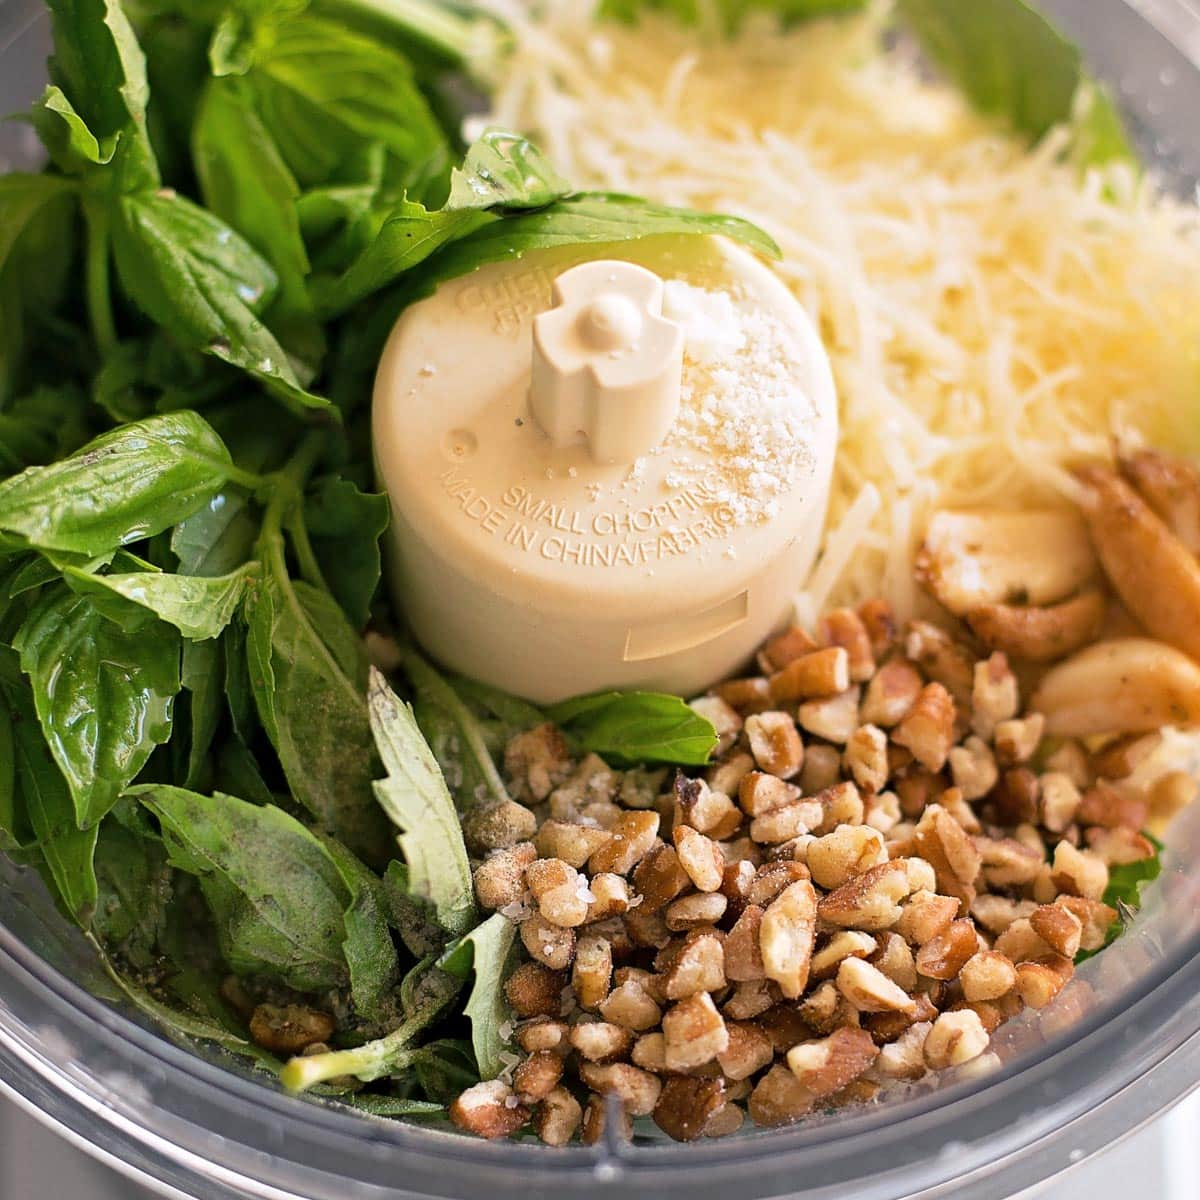 Making pesto in a food processor to combine with chicken meatballs